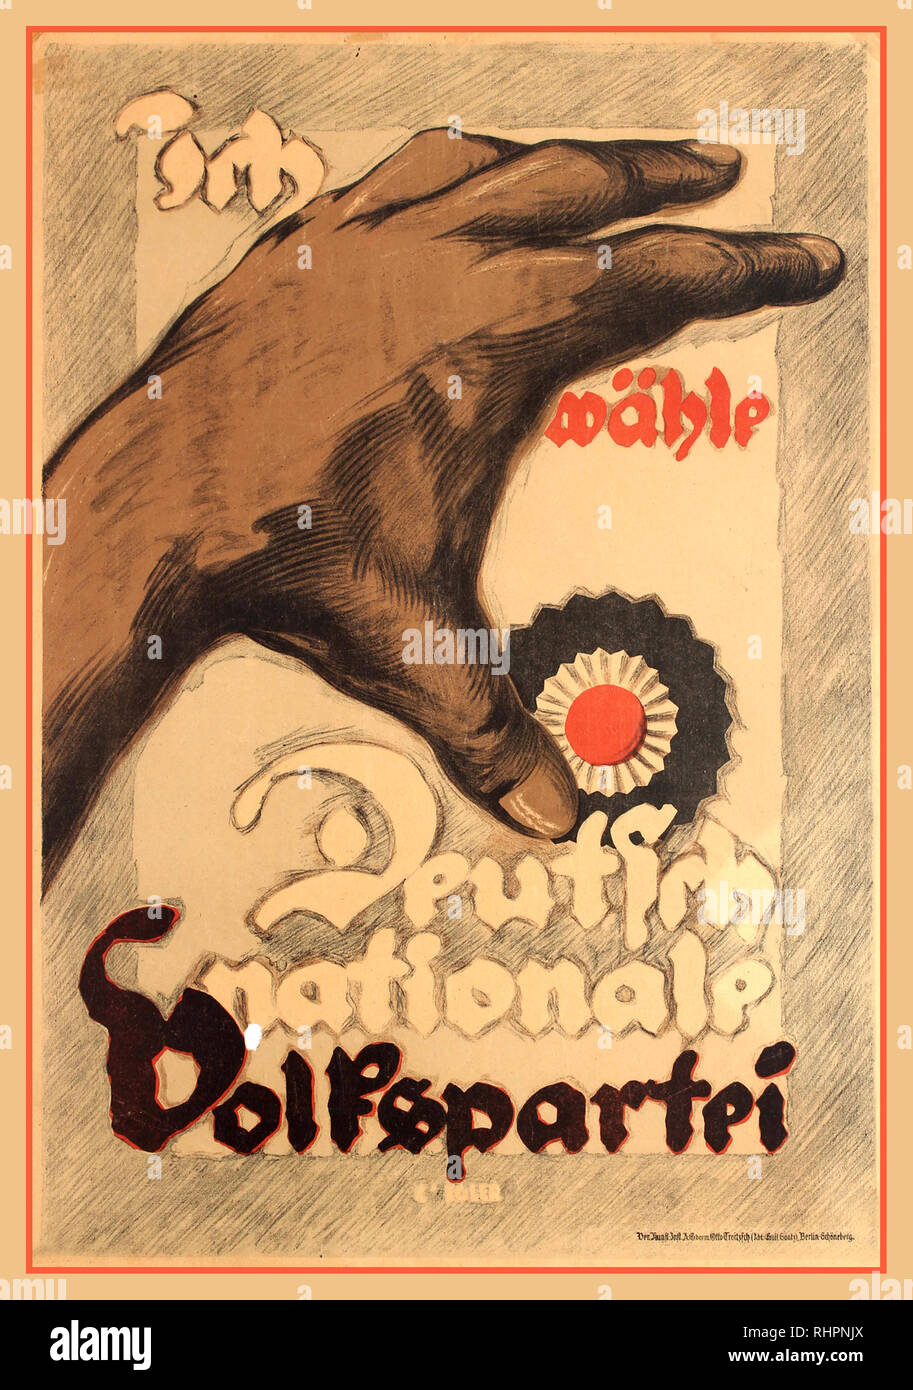 1930's German Propaganda Poster I choose the German National People Party (Ich wahle Deutsch Nationale Volkspartei). The German National People's Party (German: Deutschnationale Volkspartei, DNVP) was a national-conservative party in Germany during the time of the Weimar Republic. Before the rise of the Nazi Party, it was the major conservative and nationalist party in Weimar Germany. It was an alliance of nationalists, reactionary monarchists, völkisch and antisemitic elements supported by the Pan-German League. Lithograph printed by Vereinigte Kunst-Institute AG, Berlin-Schöneberg. German - Stock Image